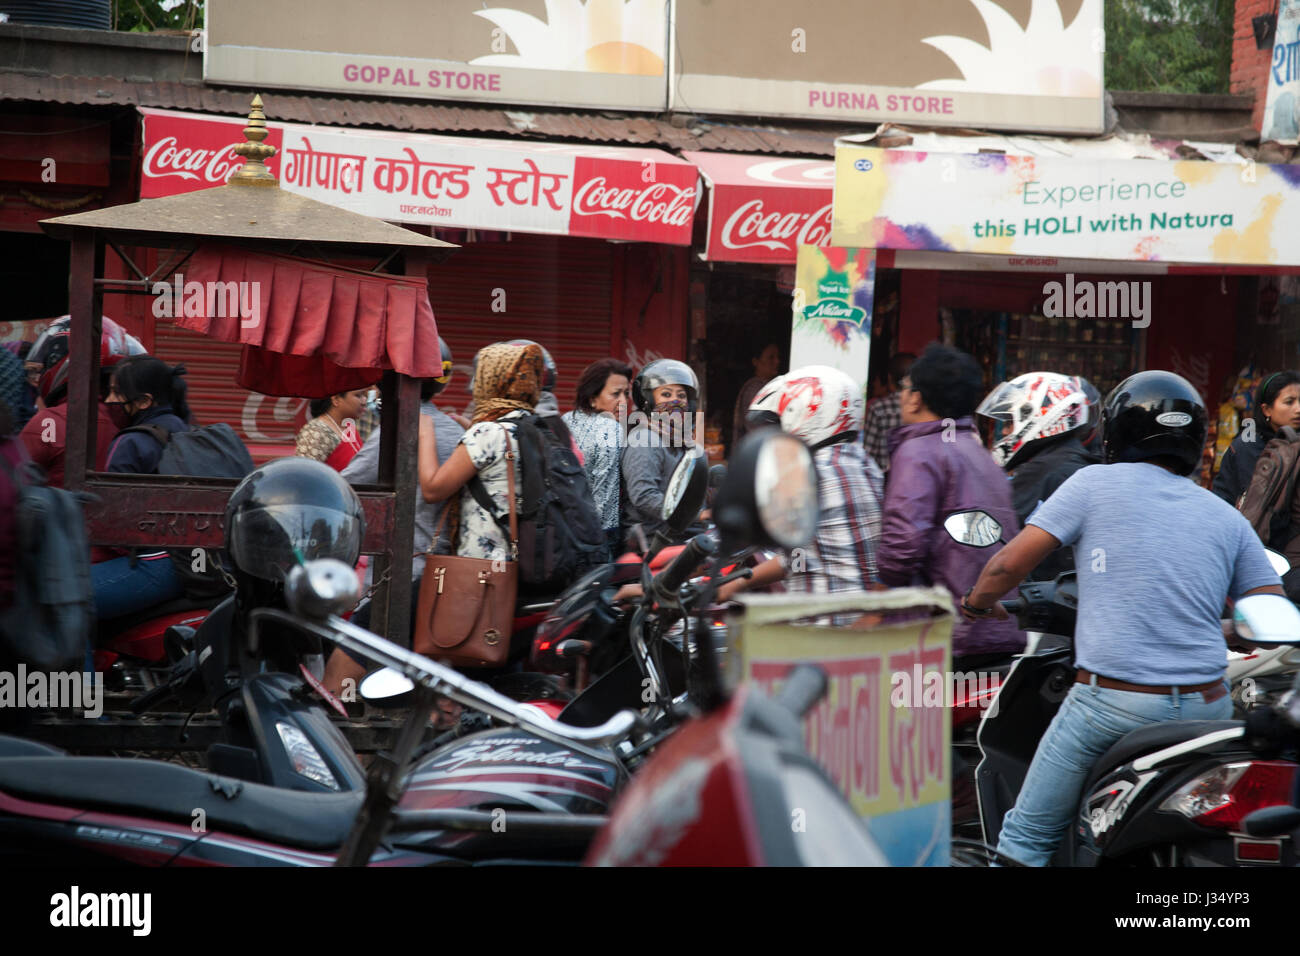 Busy street corner with mopeds and heavy traffic, Patan, Nepal - Stock Image